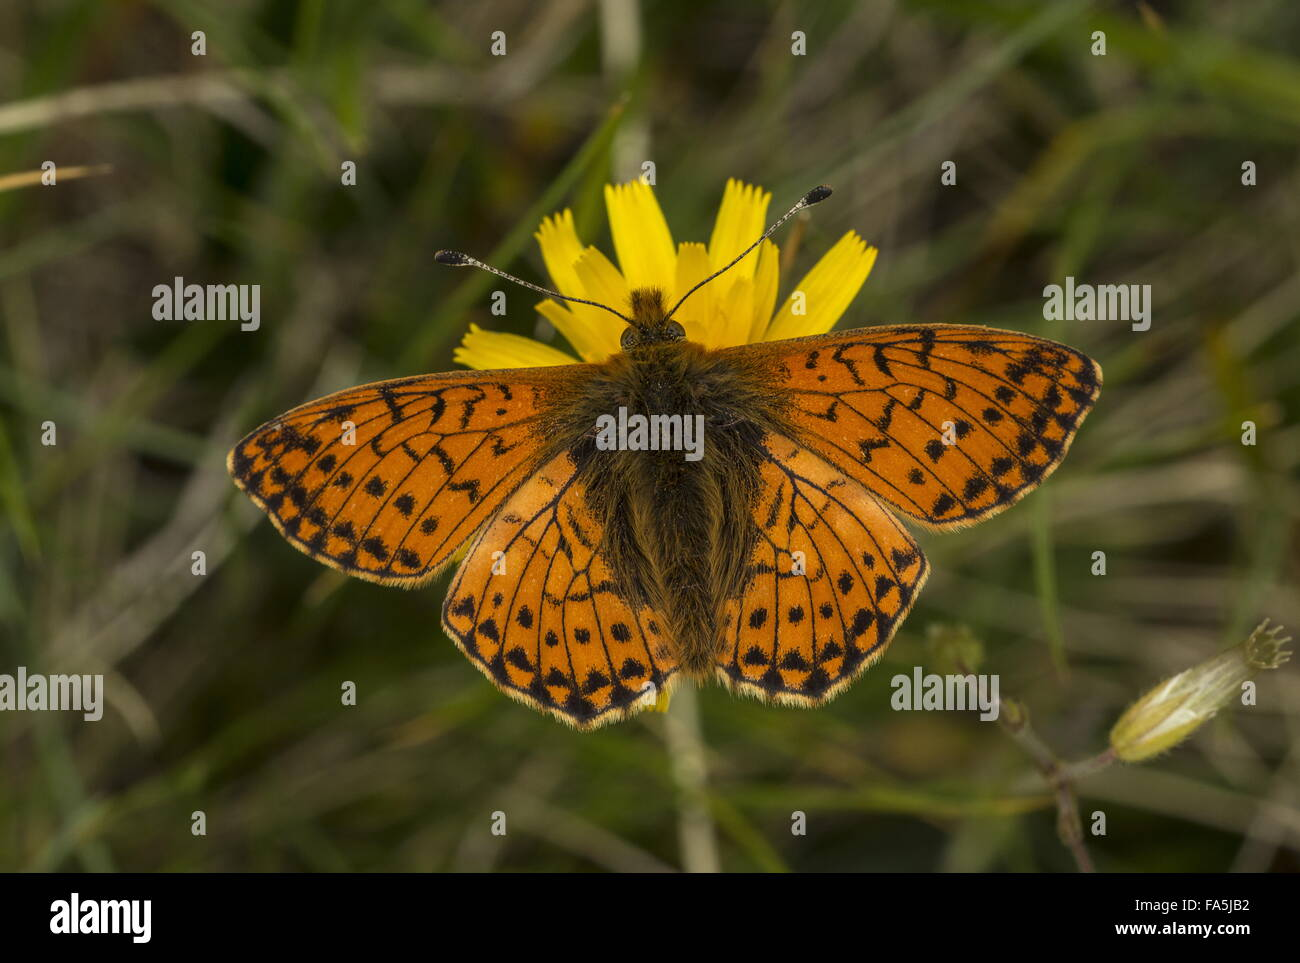 Shepherd's Fritillary, Boloria pales on hawkbit at 2500 m on slopes of Matterhorn. Stock Photo